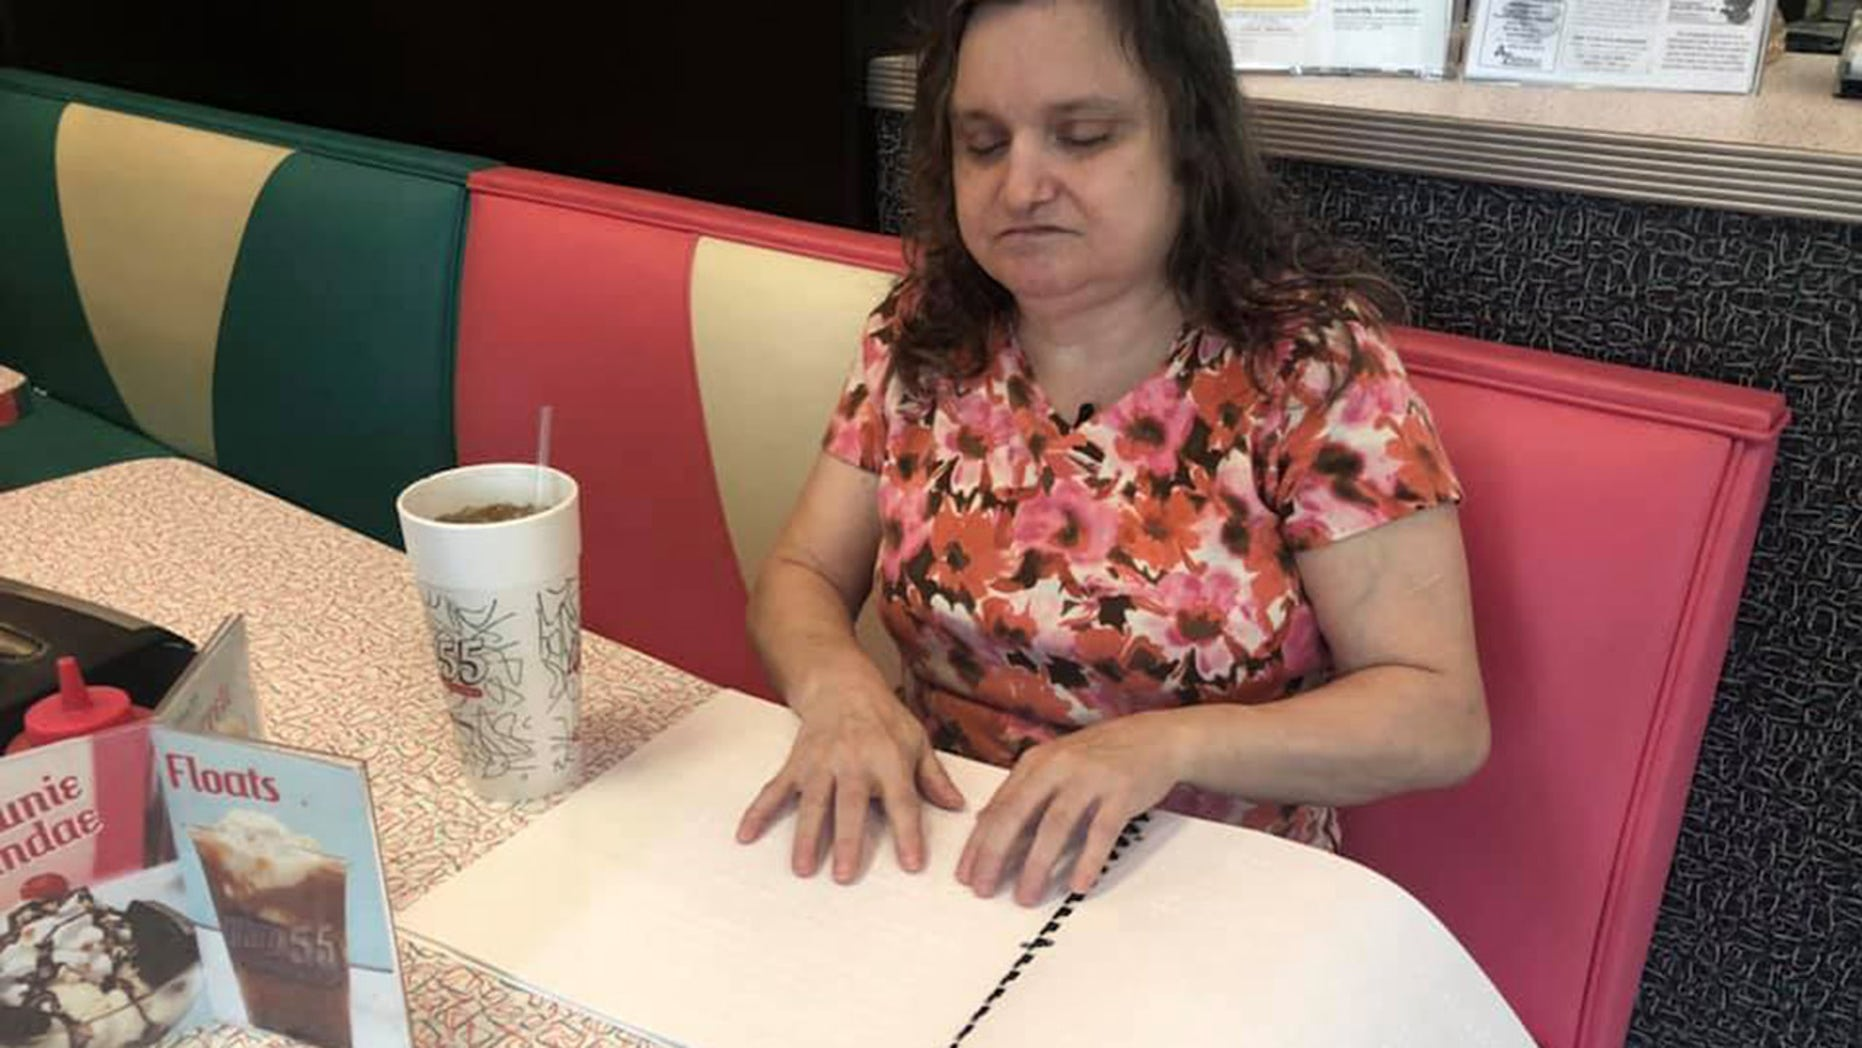 A restaurant in West Virginia created a braille menu for one its regular customers who is blind.